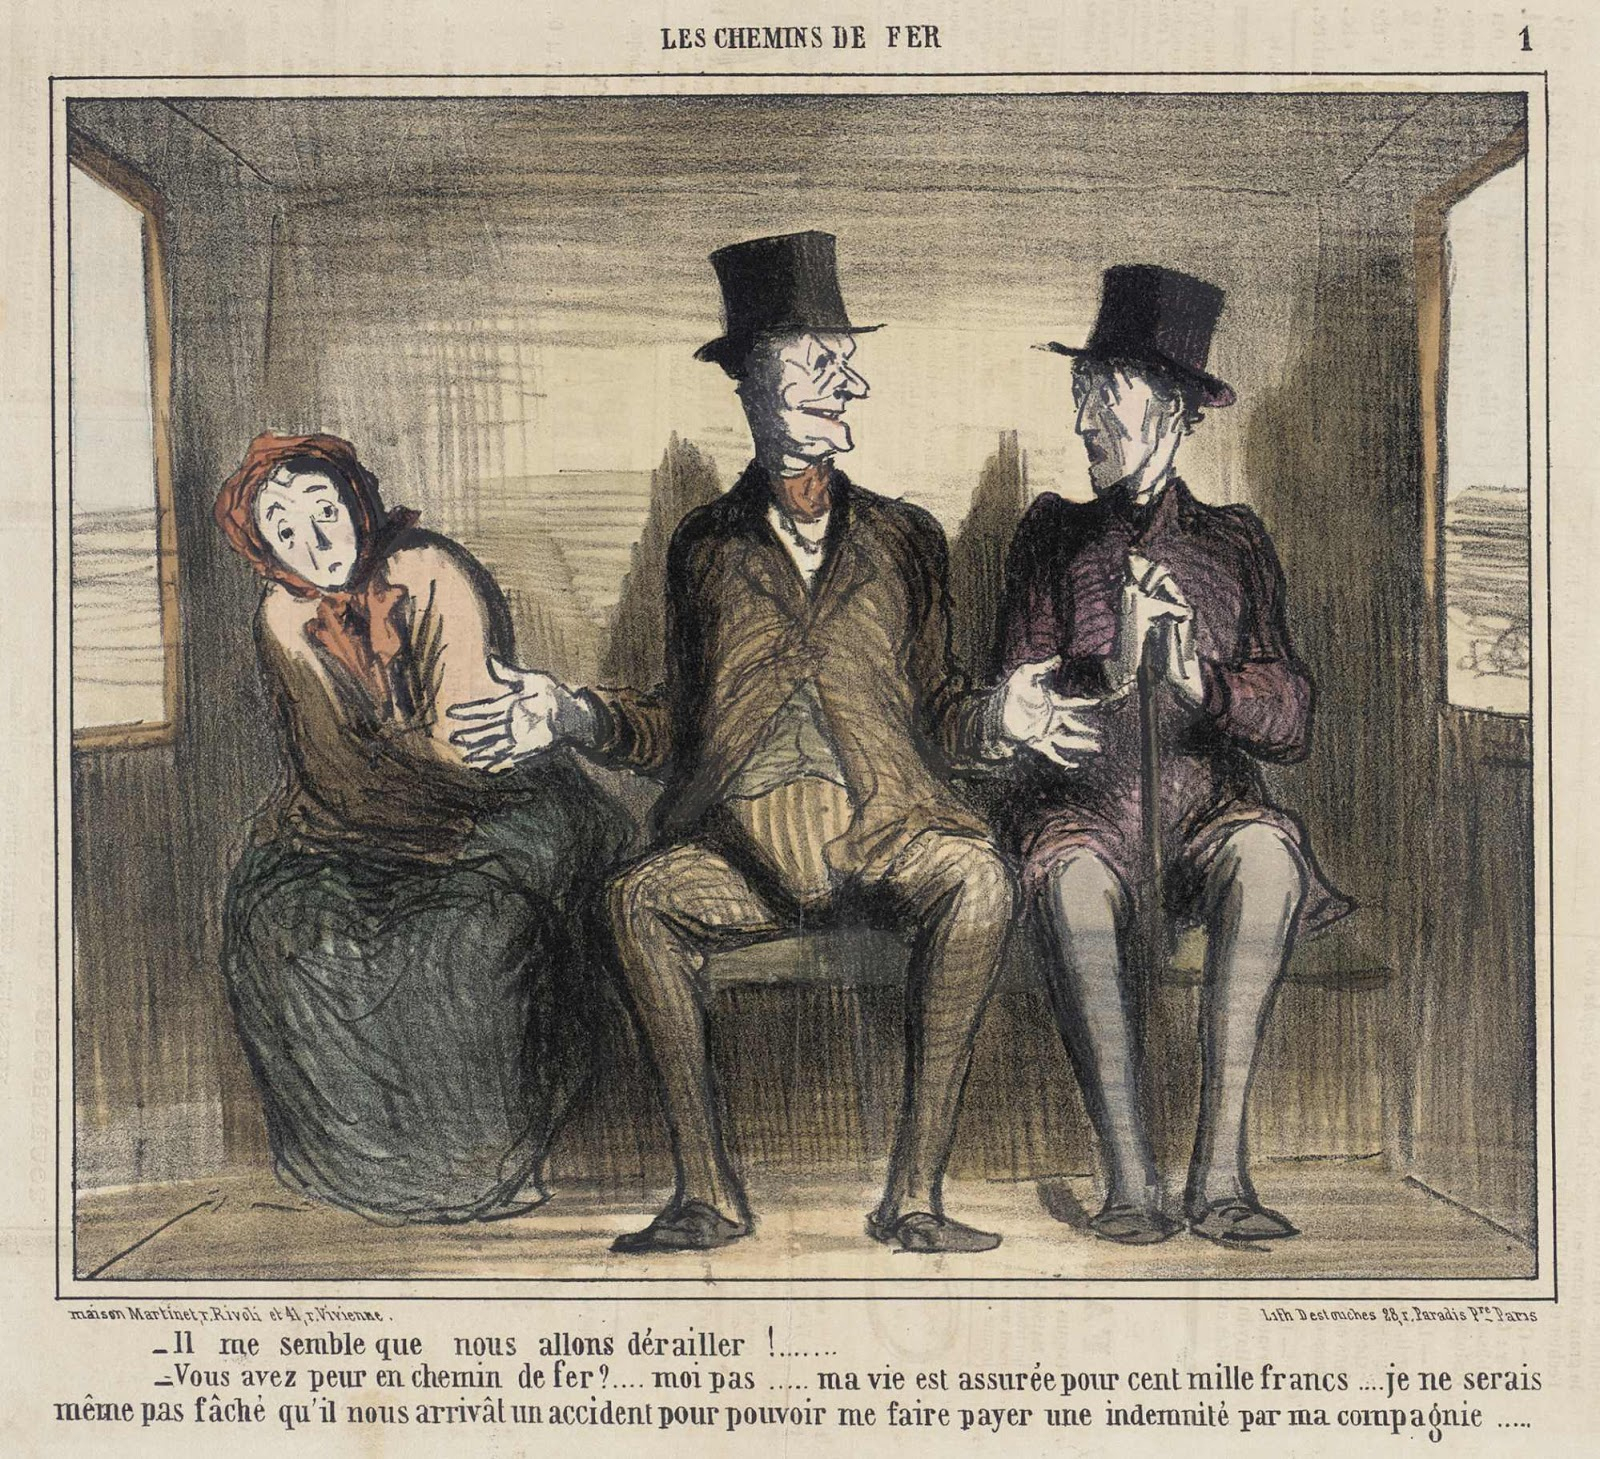 Spencer Alley: Cartoons And Caricatures By Honoré Daumier à Le Charivari